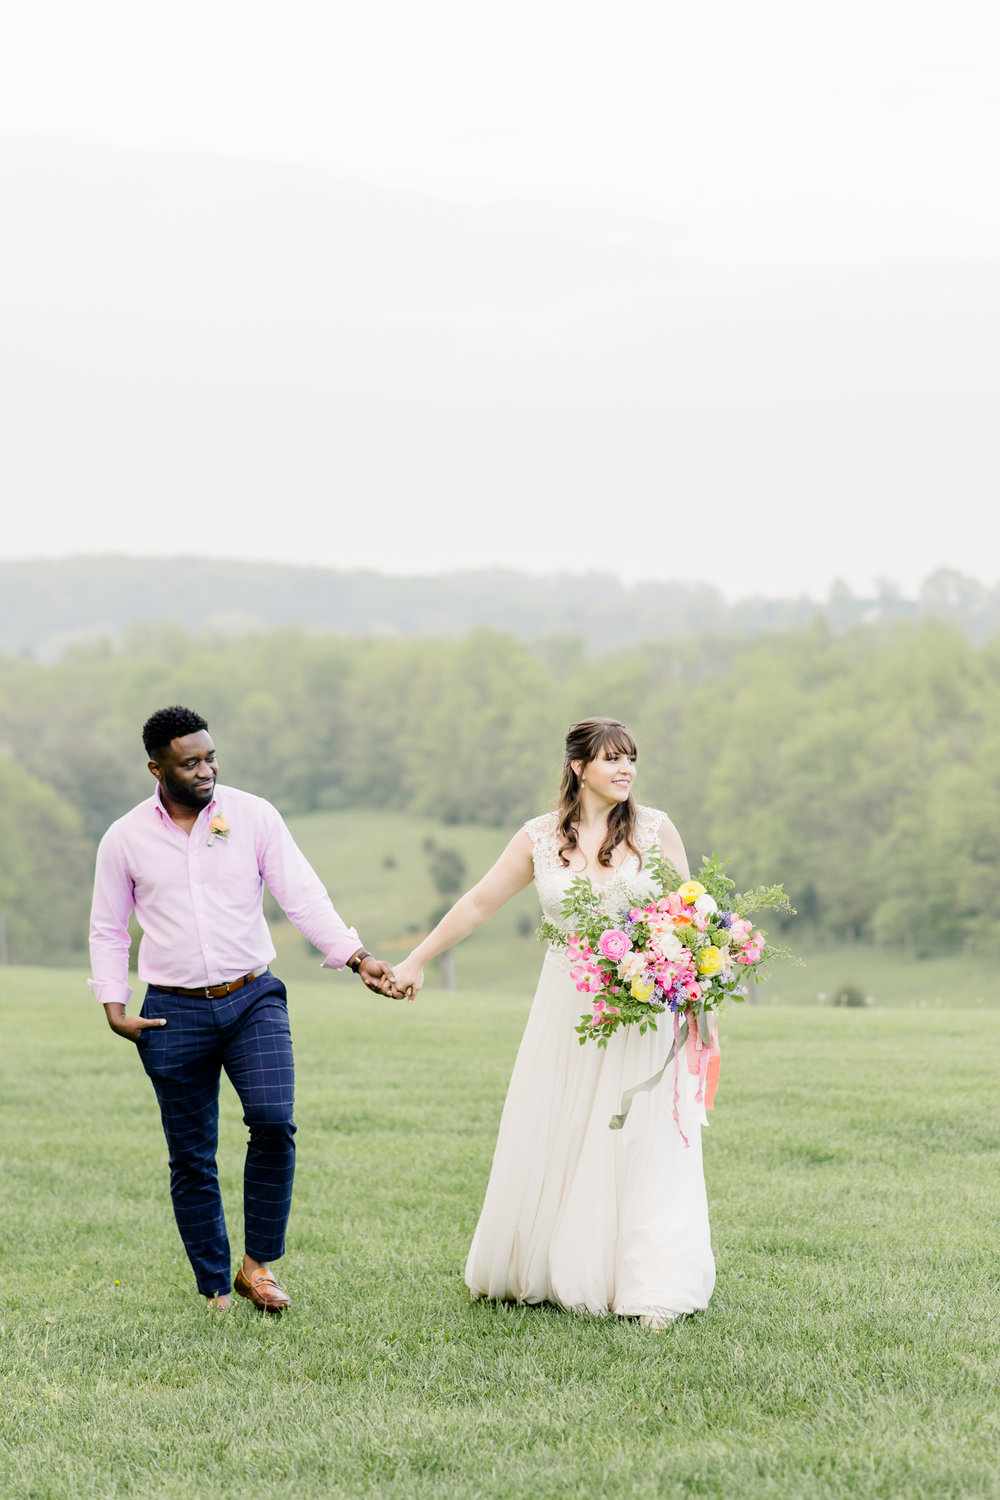 brielle-davis-events-kirsten-smith-photography-dulanys-overlook-bride-groom.jpg